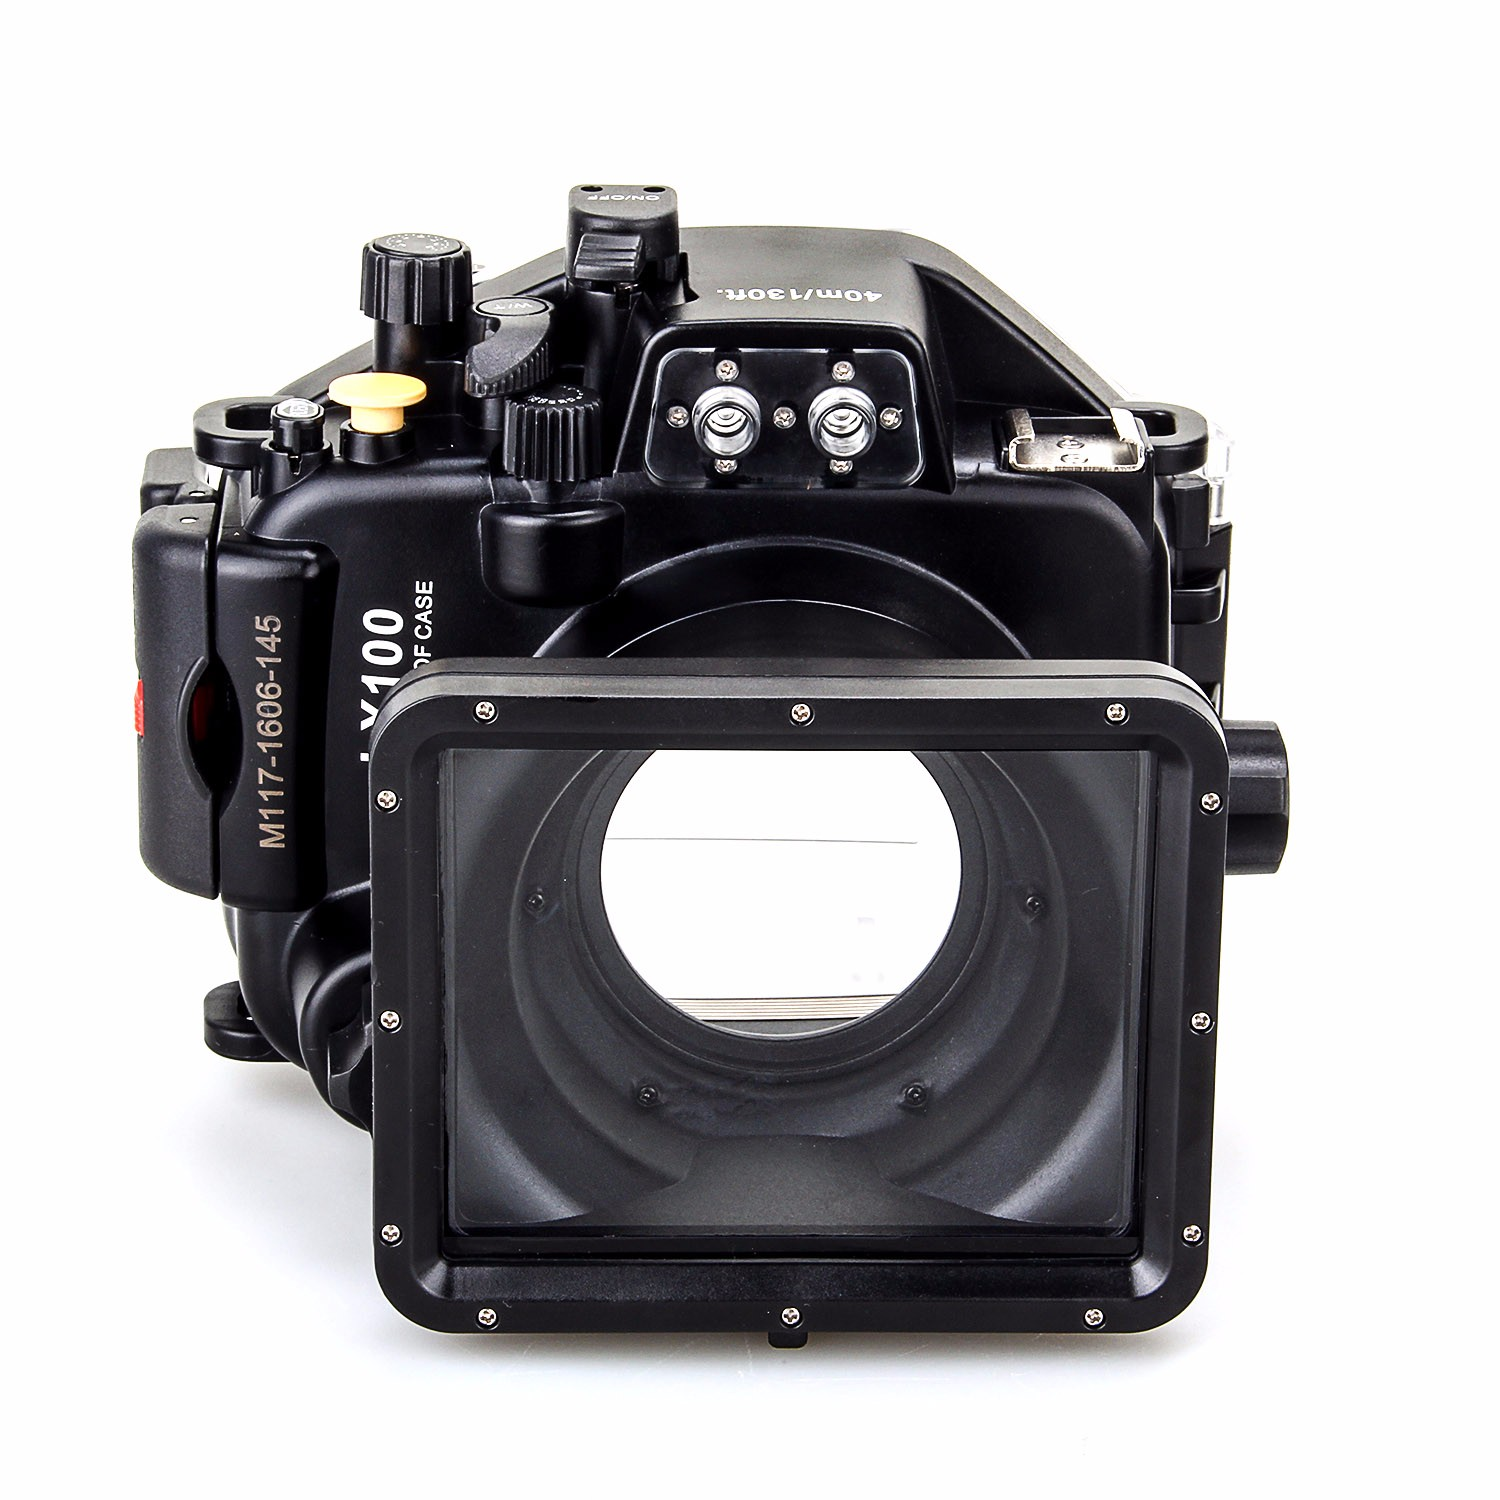 40M/130ft Underwater Housing for Panasonic Lumix LX100 with 27-75mm Lens meikon 40m wp dc44 waterproof underwater housing case 40m 130ft for canon g1x camera 18 as wp dc44